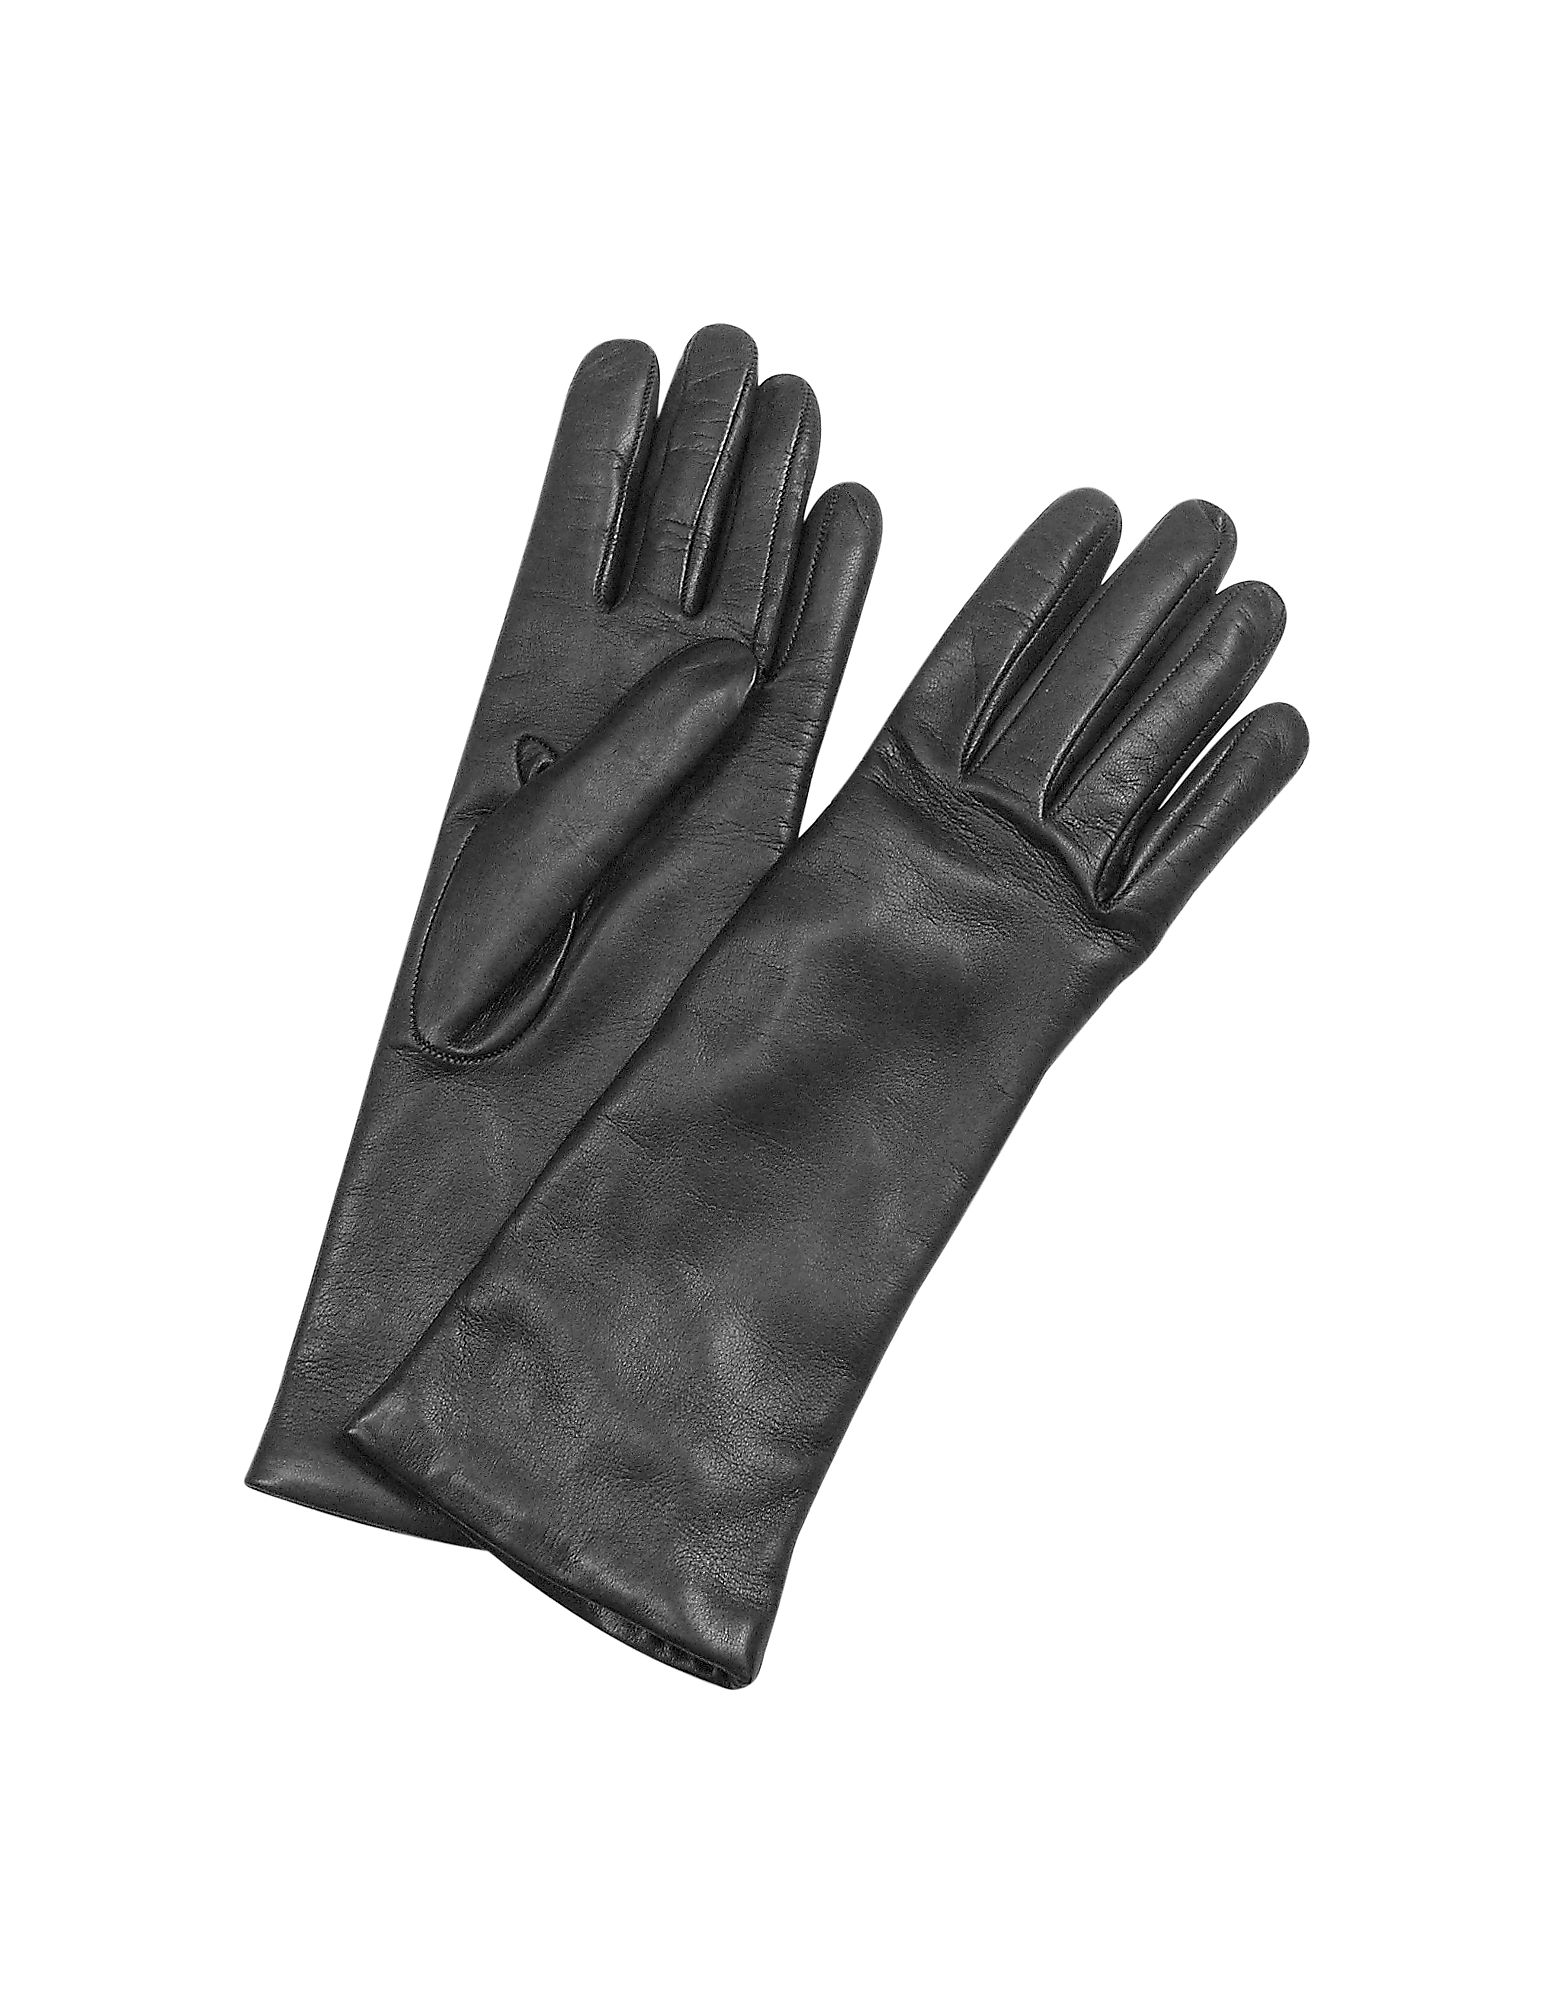 Forzieri Designer Women's Gloves, Women's Cashmere Lined Black Italian Leather Long Gloves